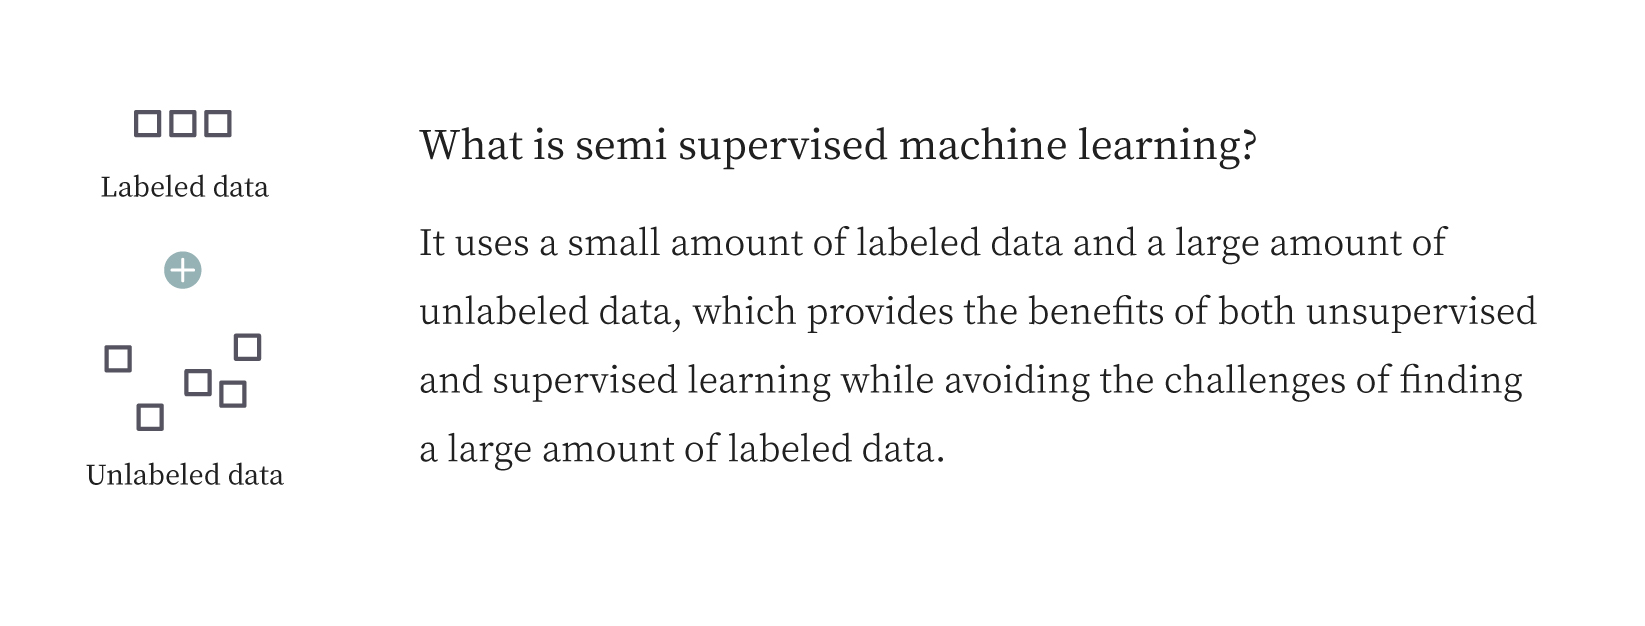 What is semi-supervised machine learning list